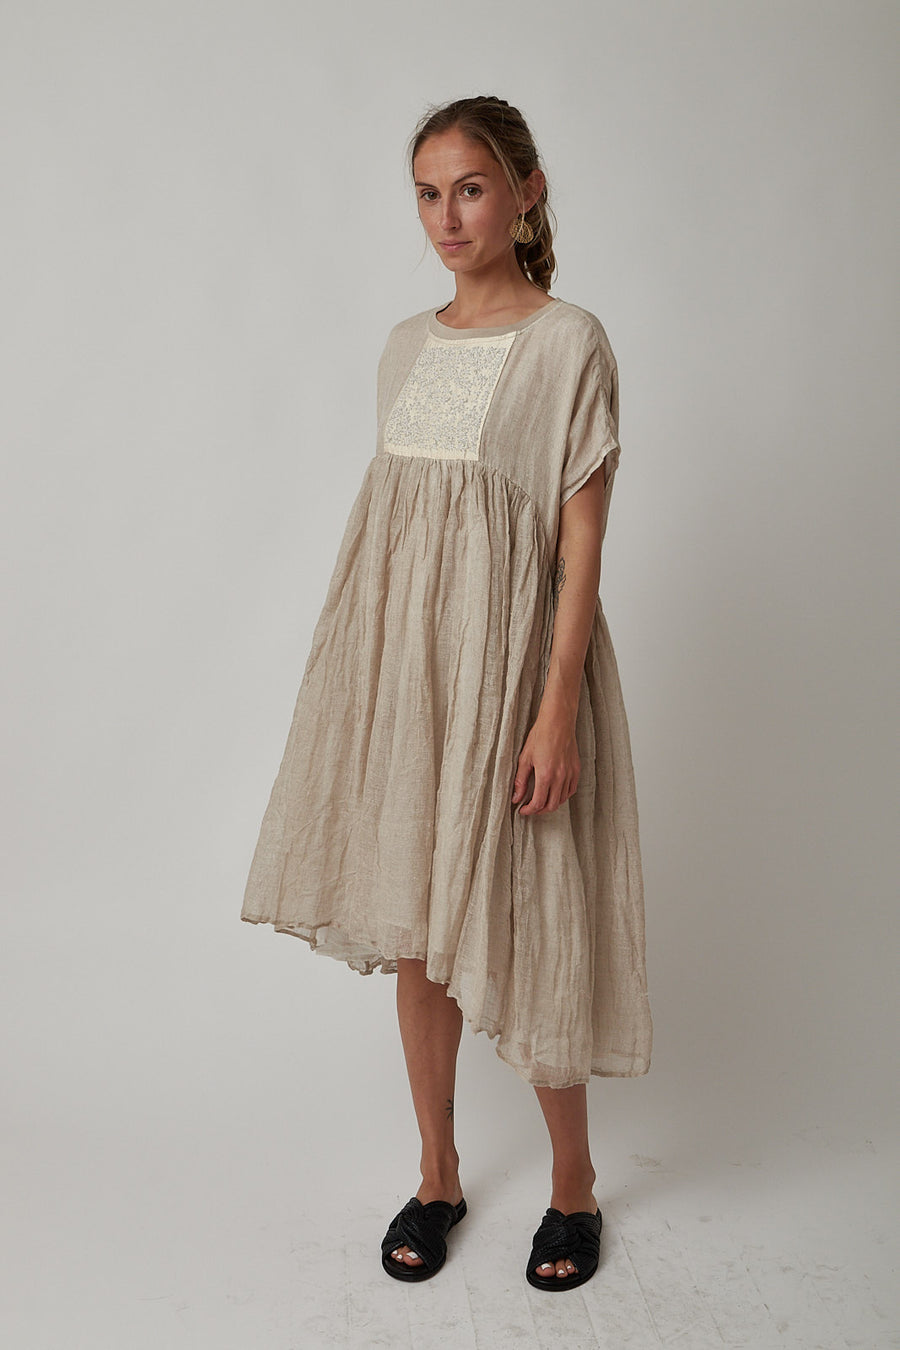 AO Dress Taupe Embroidered Dress Sale